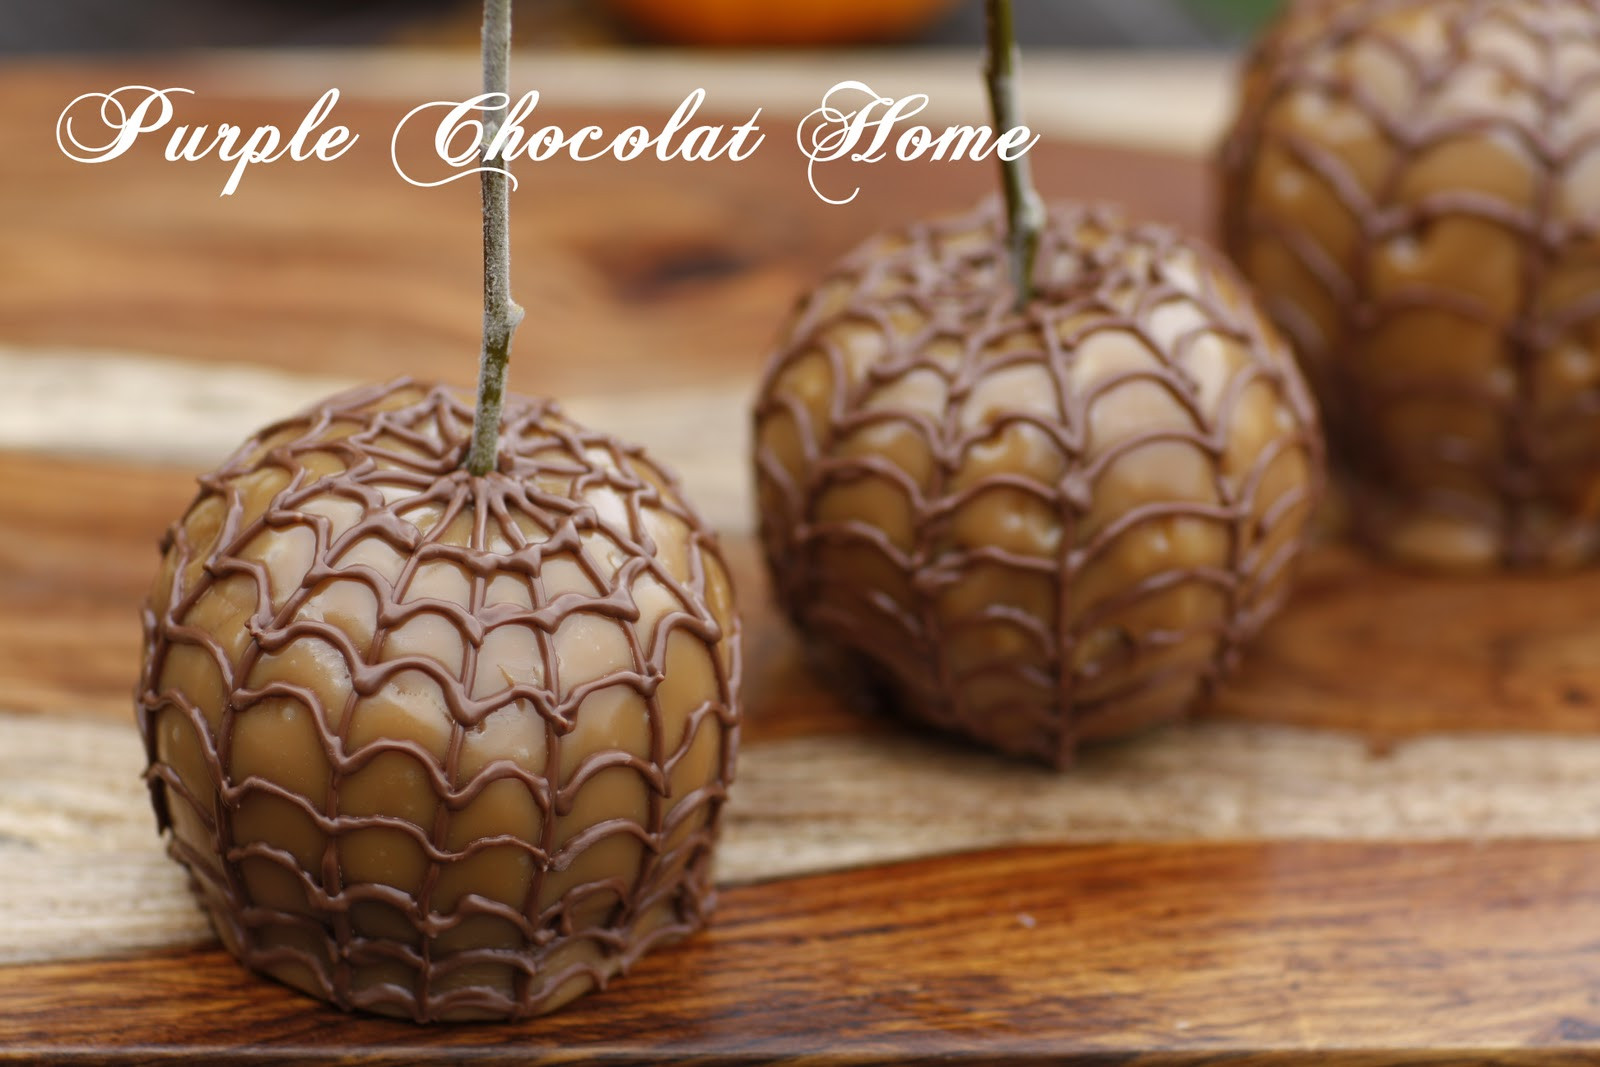 Halloween Caramel Apples  Spider Webbed Caramel Apples Purple Chocolat Home